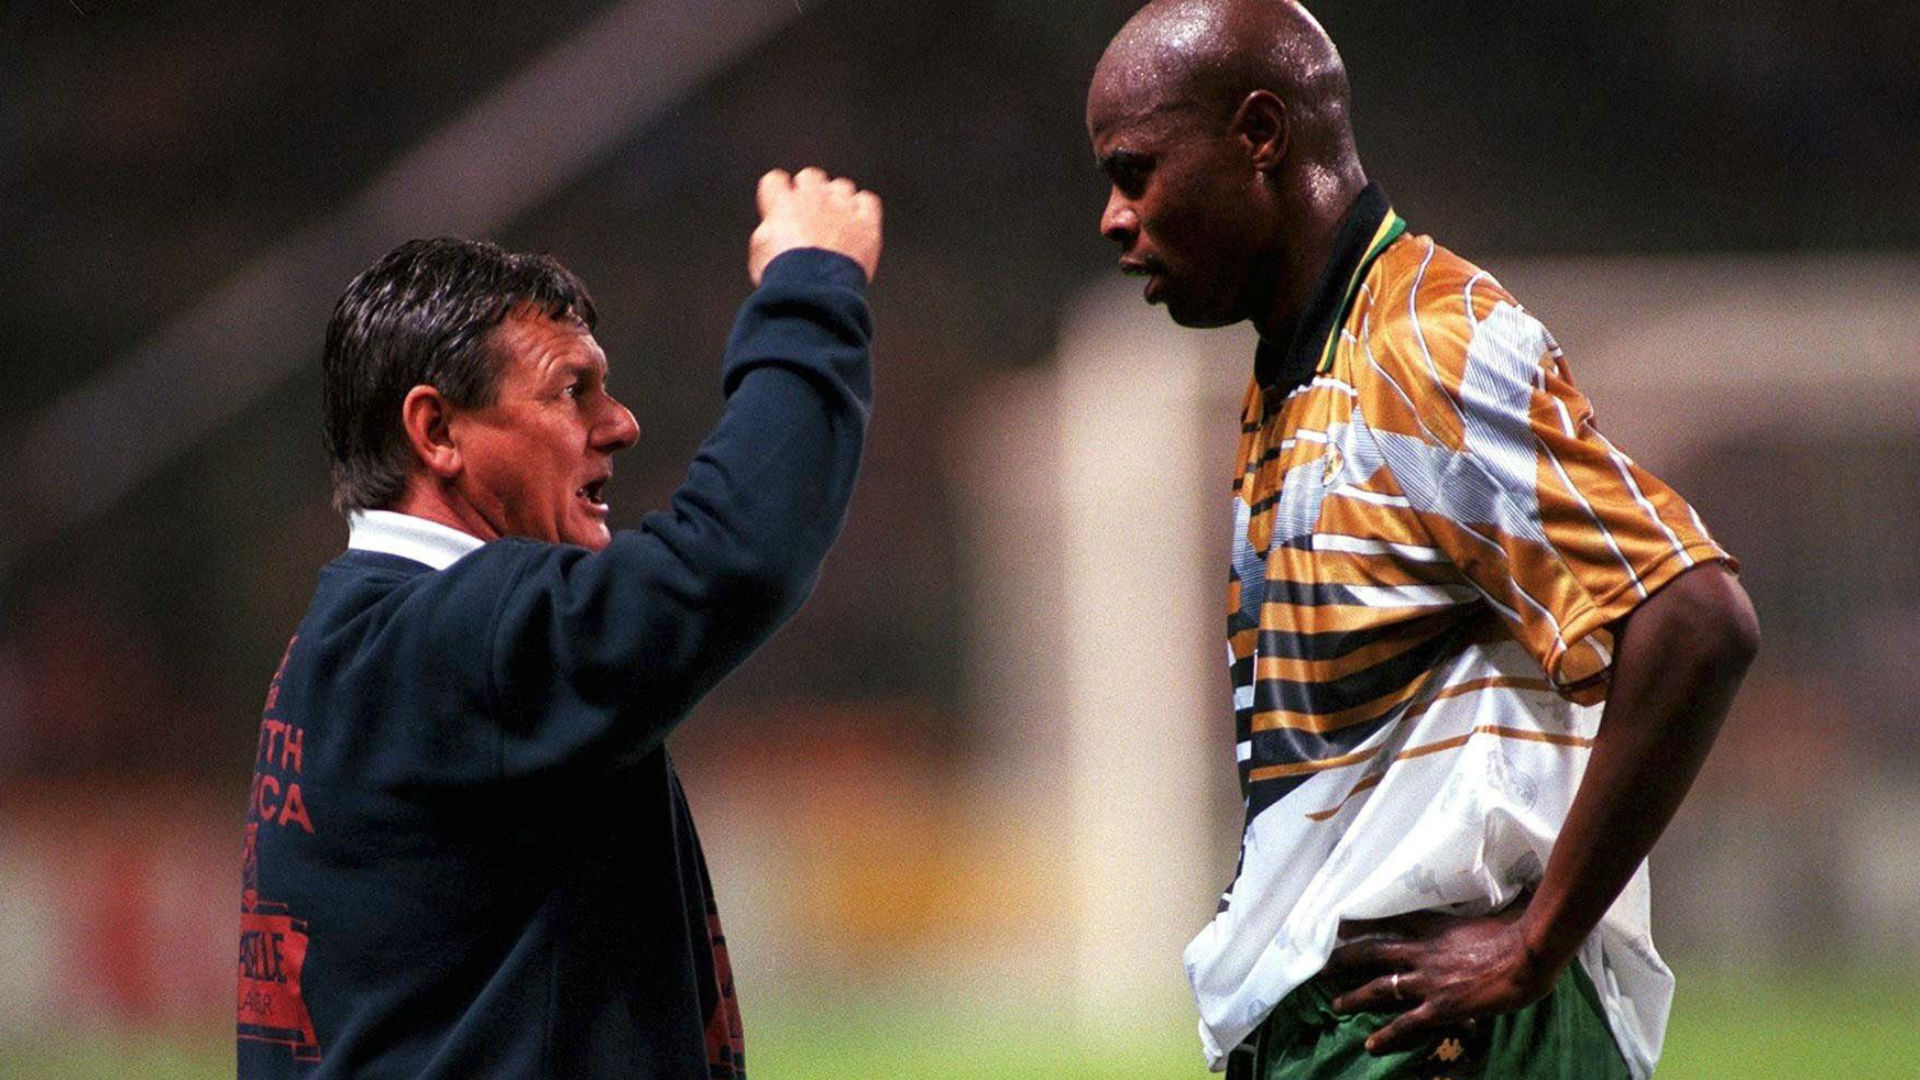 Bafana Bafana legend Phil Masinga has passed away